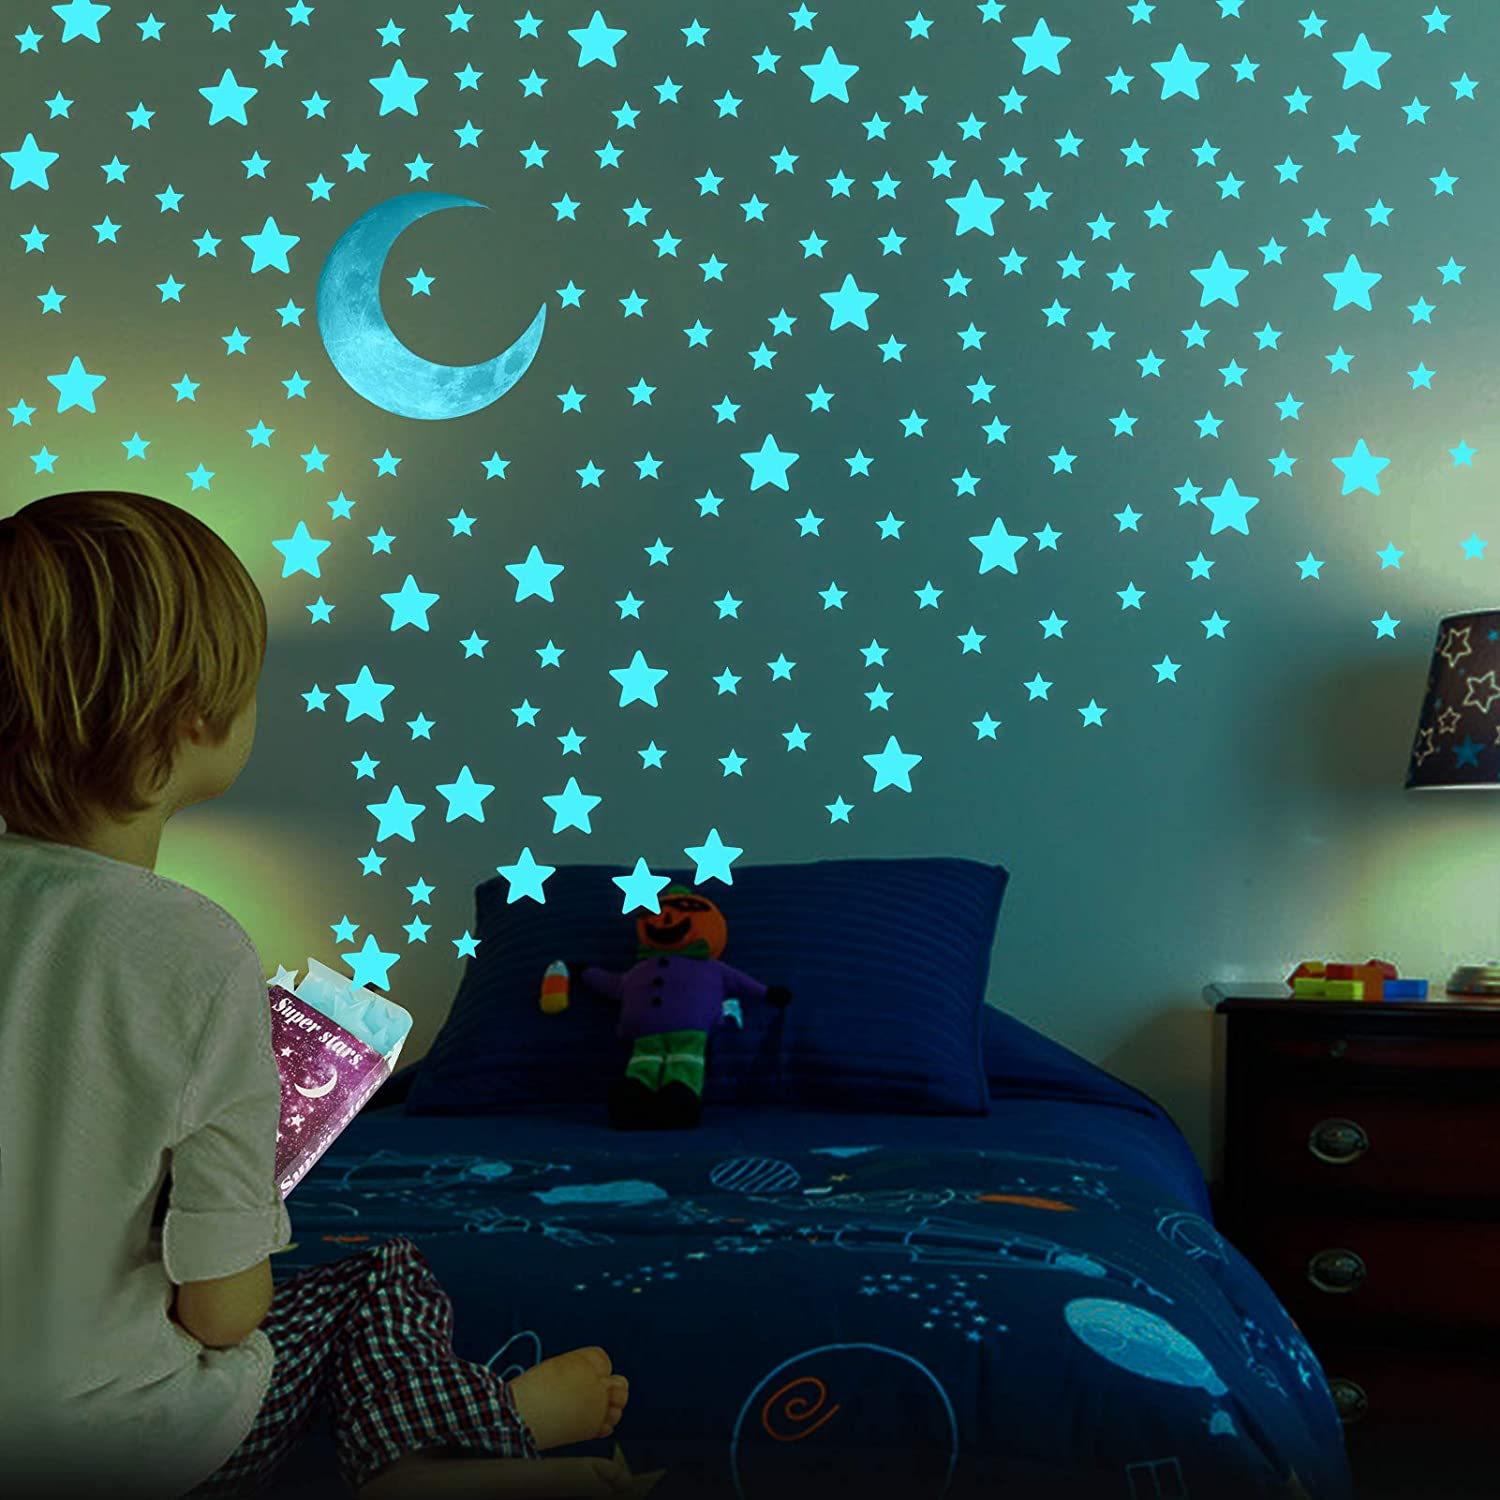 Glow in The Dark Stars for Ceiling - AirXwills 200 Pcs Stars for Ceiling with Ultra Brighter Glow Moons Wall Decor, Kids Room Decor for Girls and Boys, 3D Glow Stars and Moon for Starry Sky. (Blue)